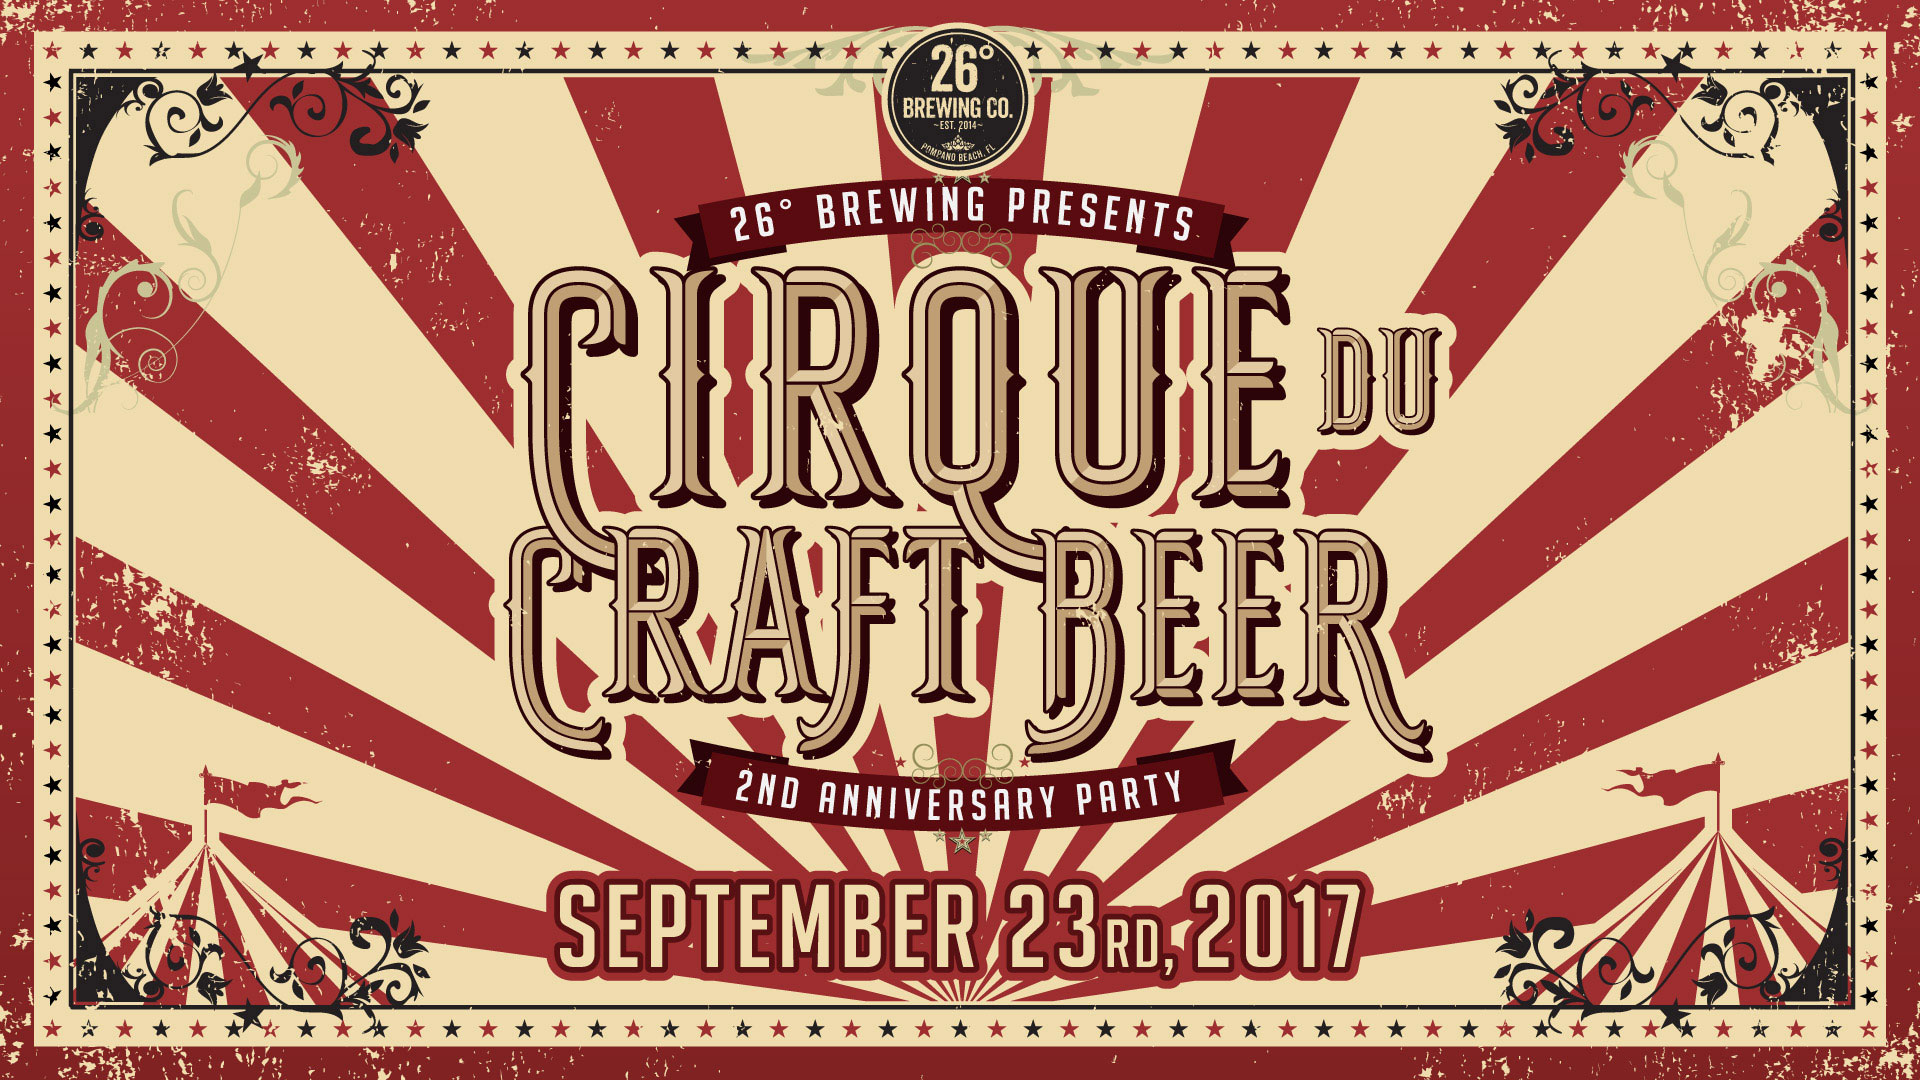 26-Brewing-2nd-anniv-Cirque-u-Craft-Beer